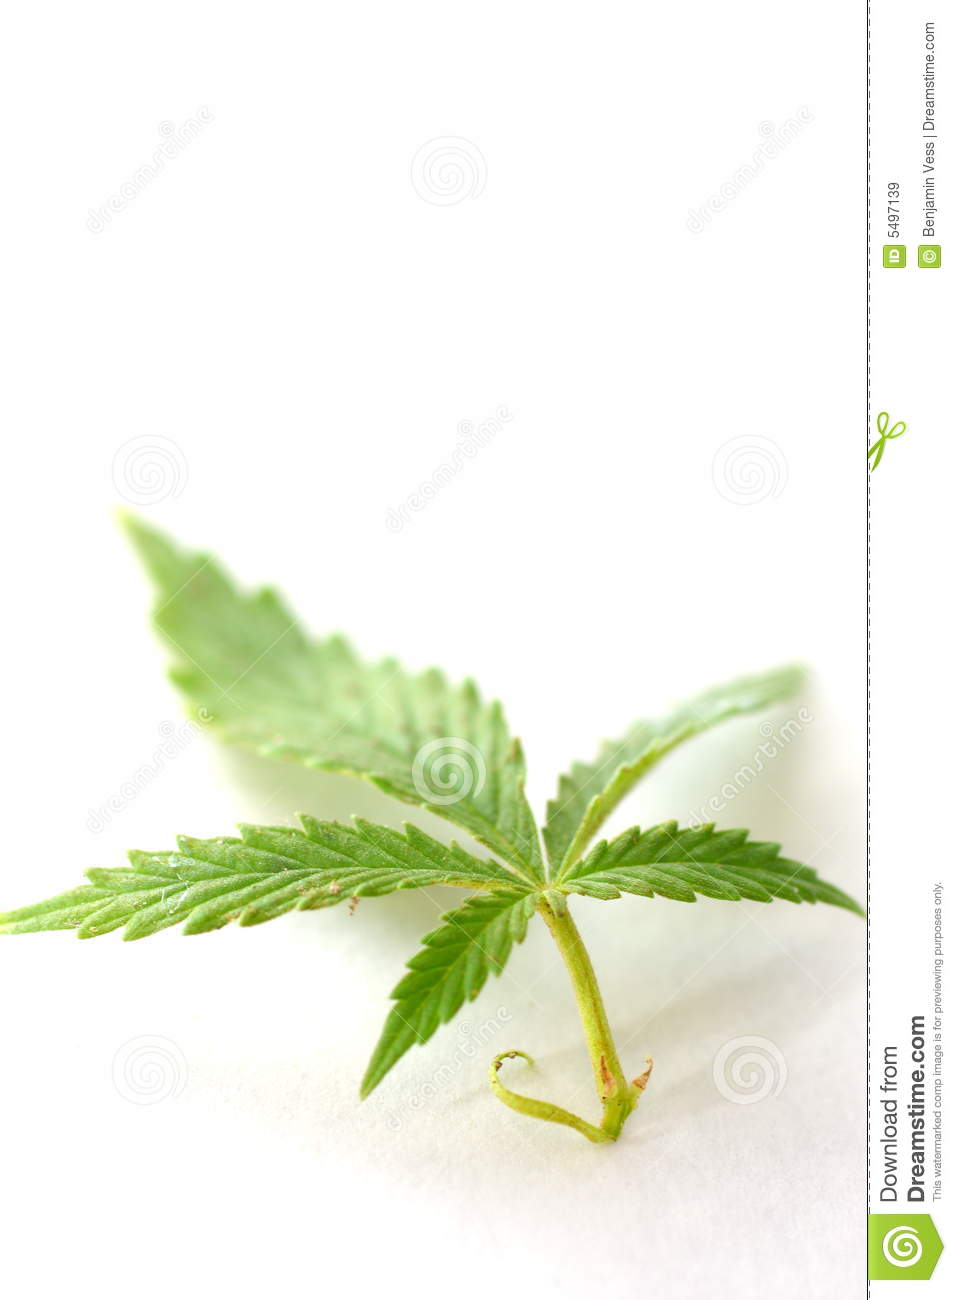 Lame de cannabis